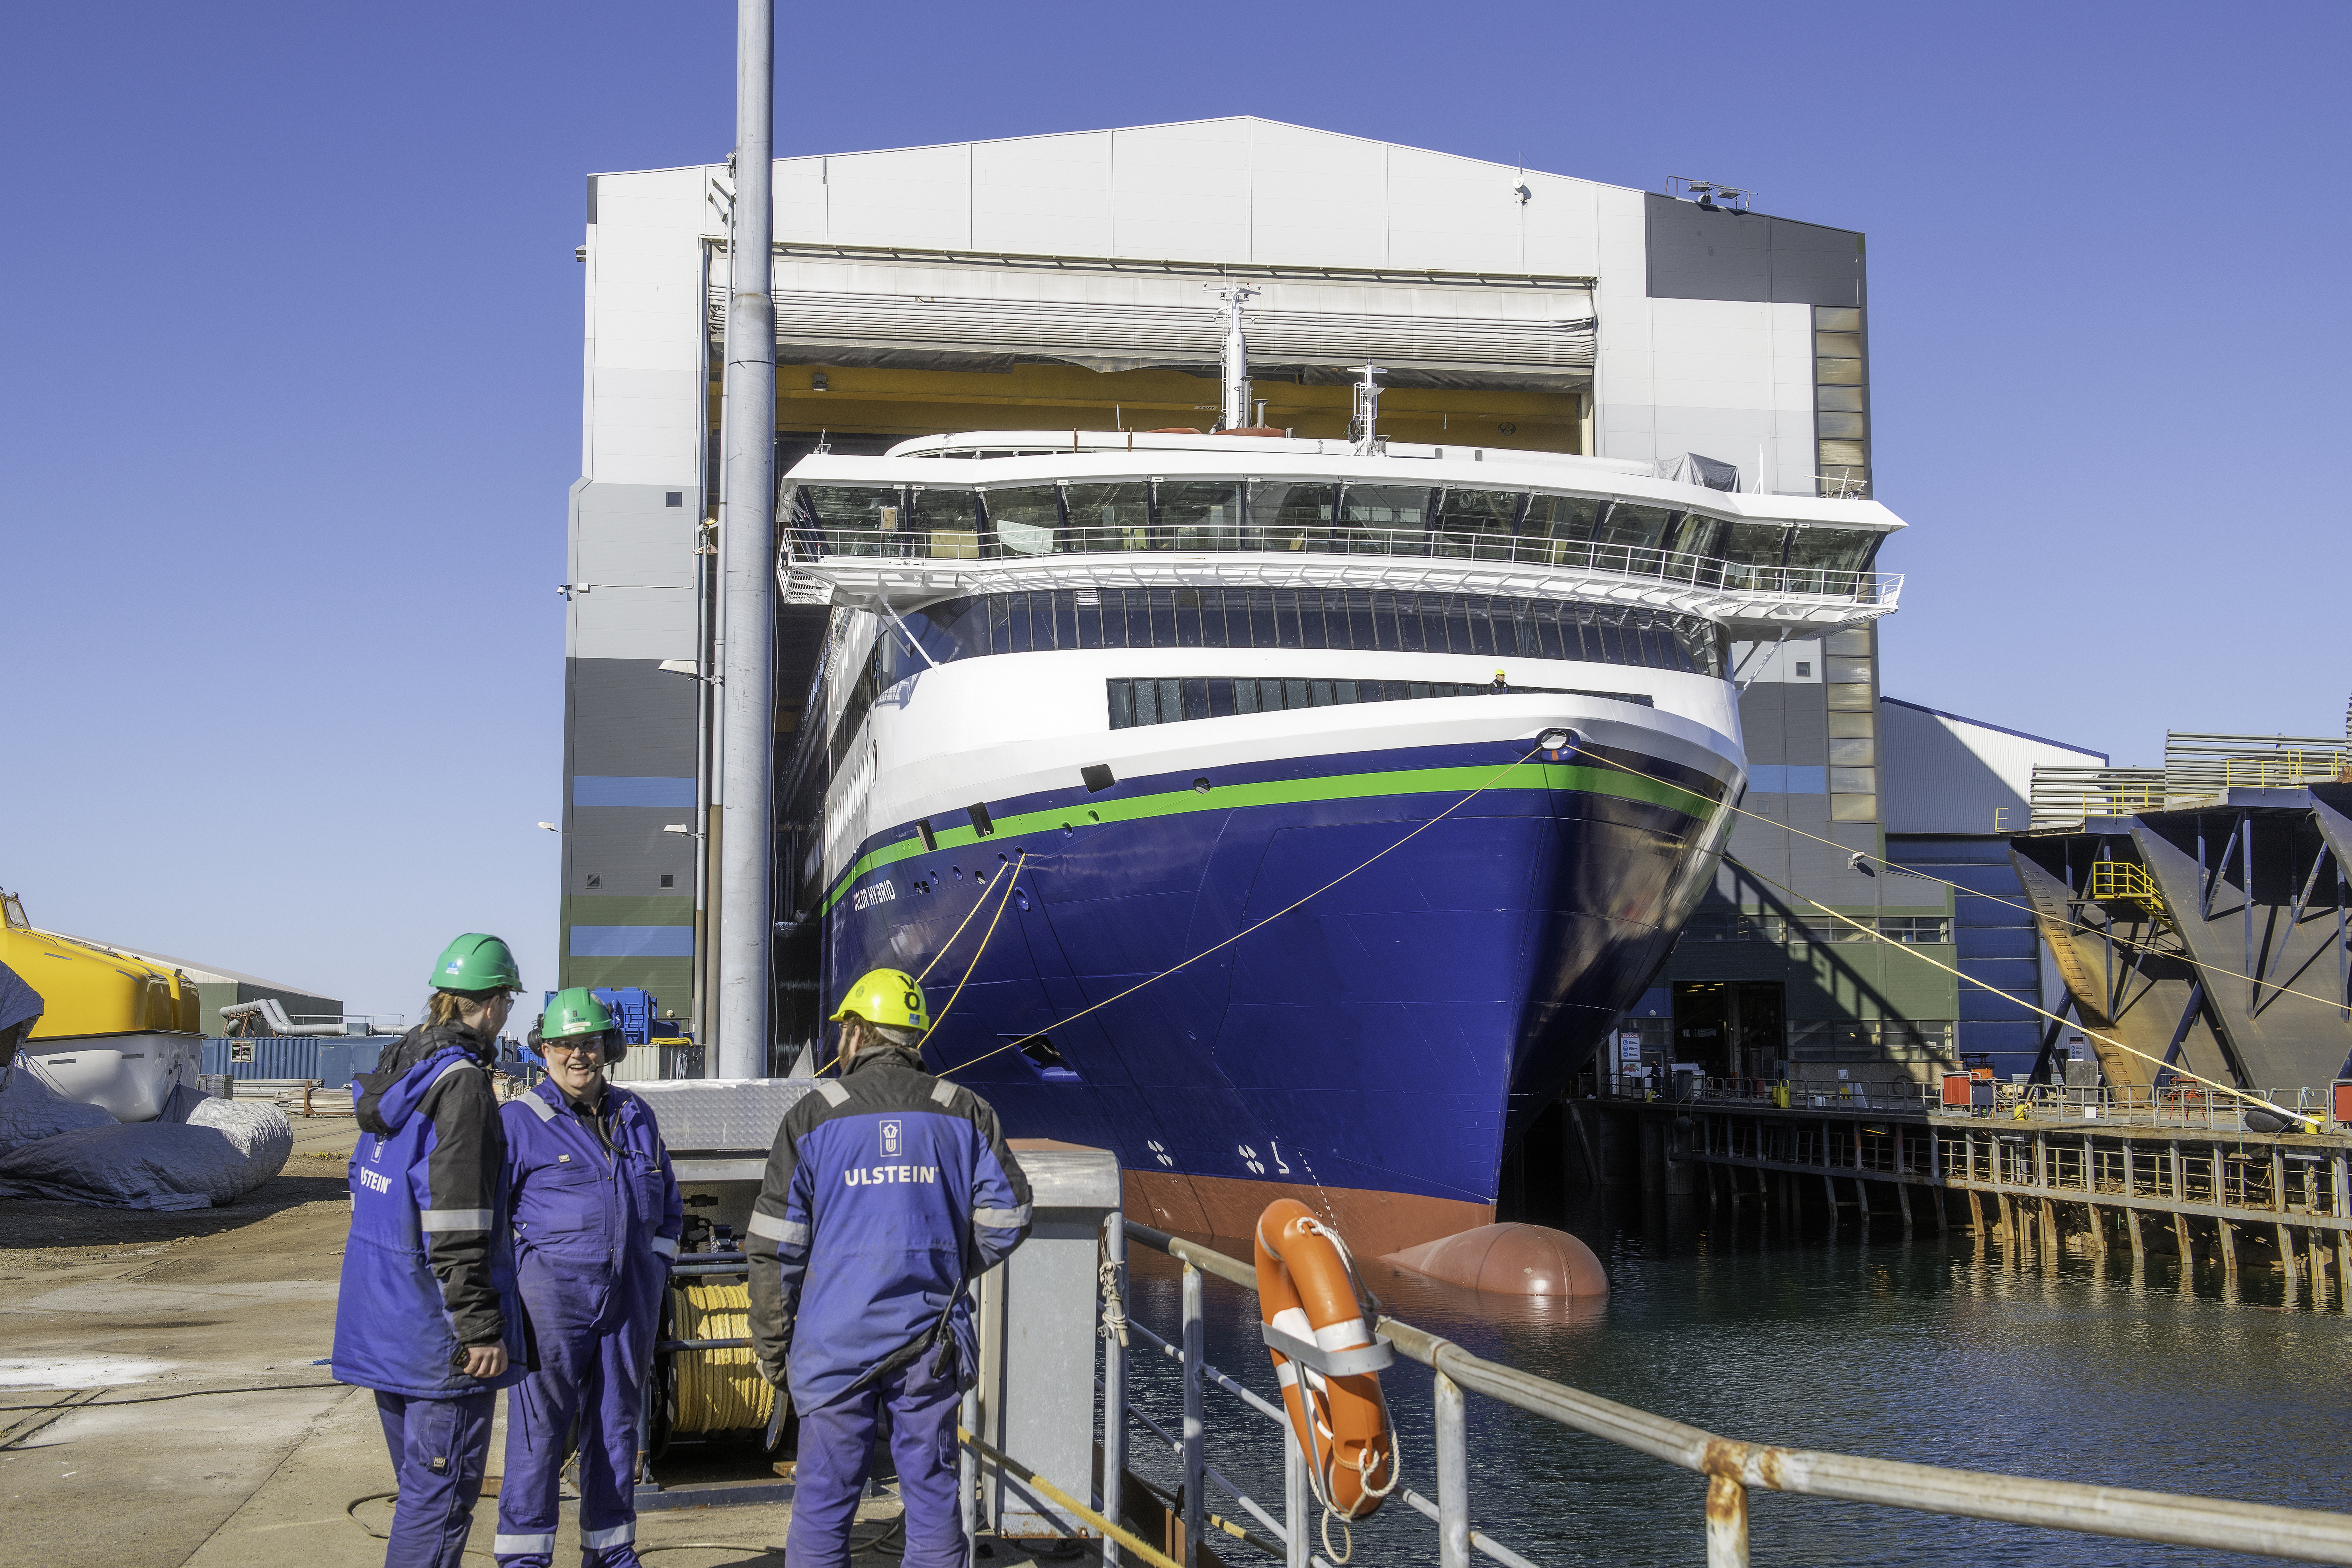 World's largest plug-in hybrid ship hits water with equivalent of 50